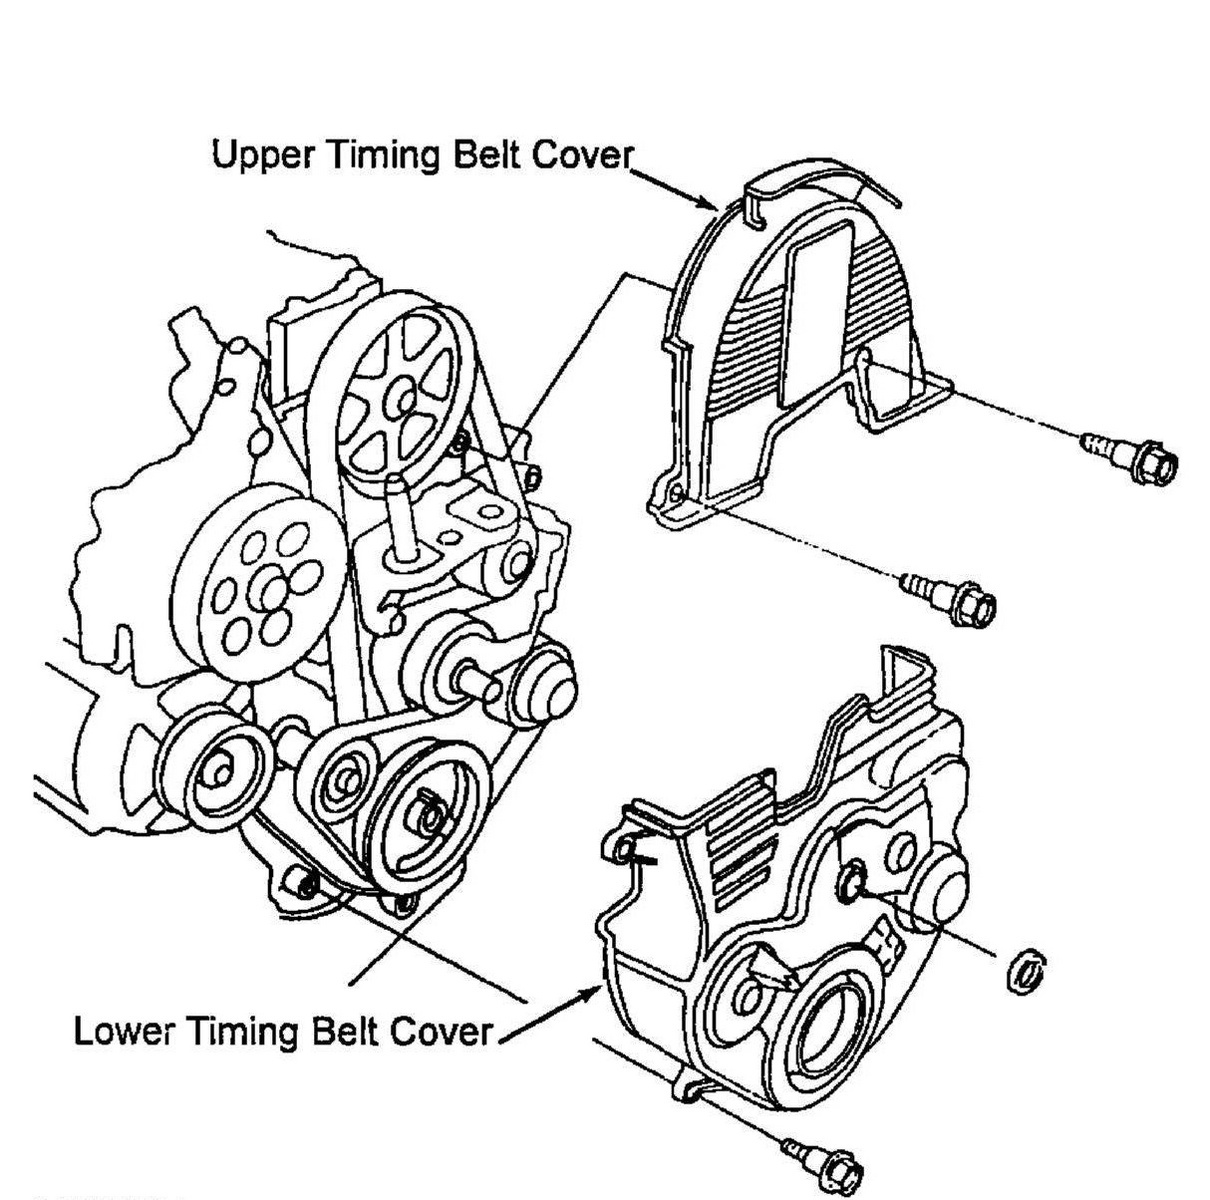 hight resolution of 1997 honda accord need diagram for timing belt solved wiring box diagram likewise honda civic timing belt likewise 2008 honda civic